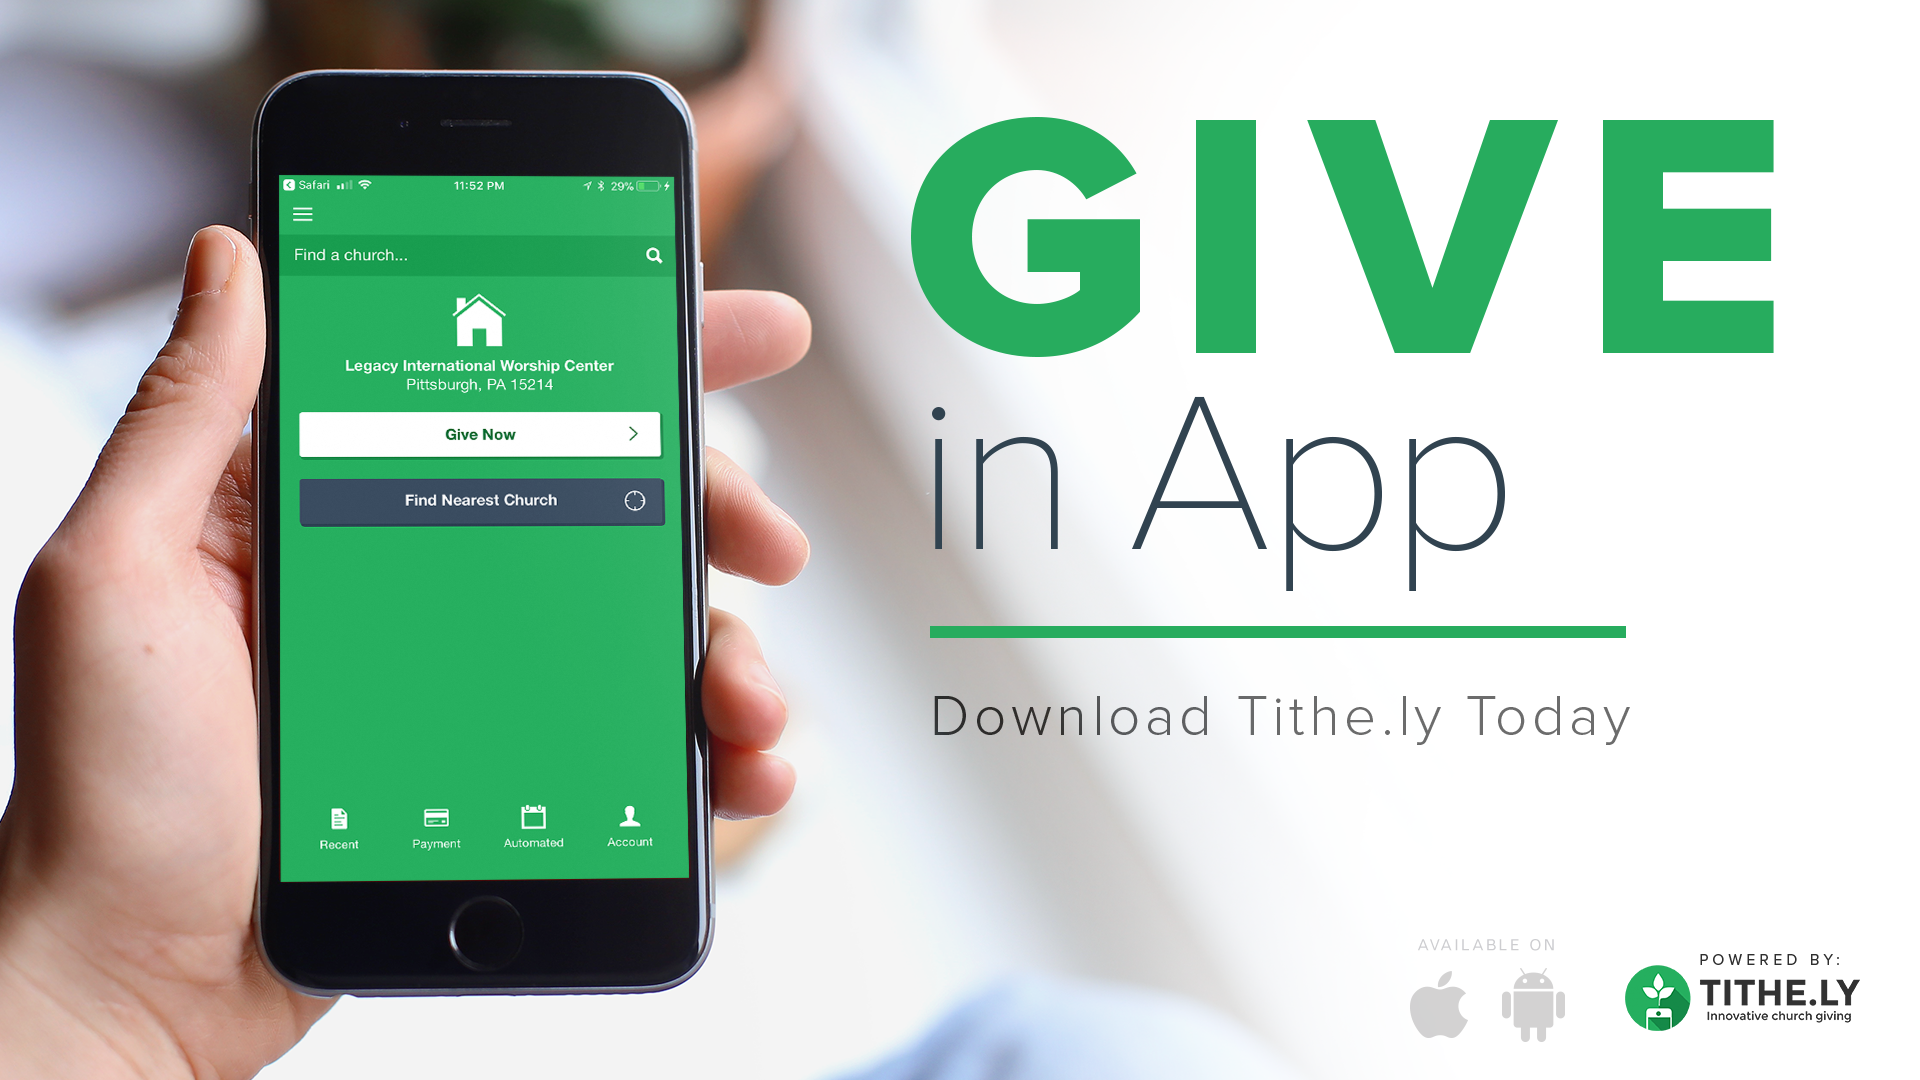 MOBILE GIVING -  Give right from your phone with the Tithe.ly app. It's free, it's secure and easy to setup in 4 simple steps:1. Download the app2. Search